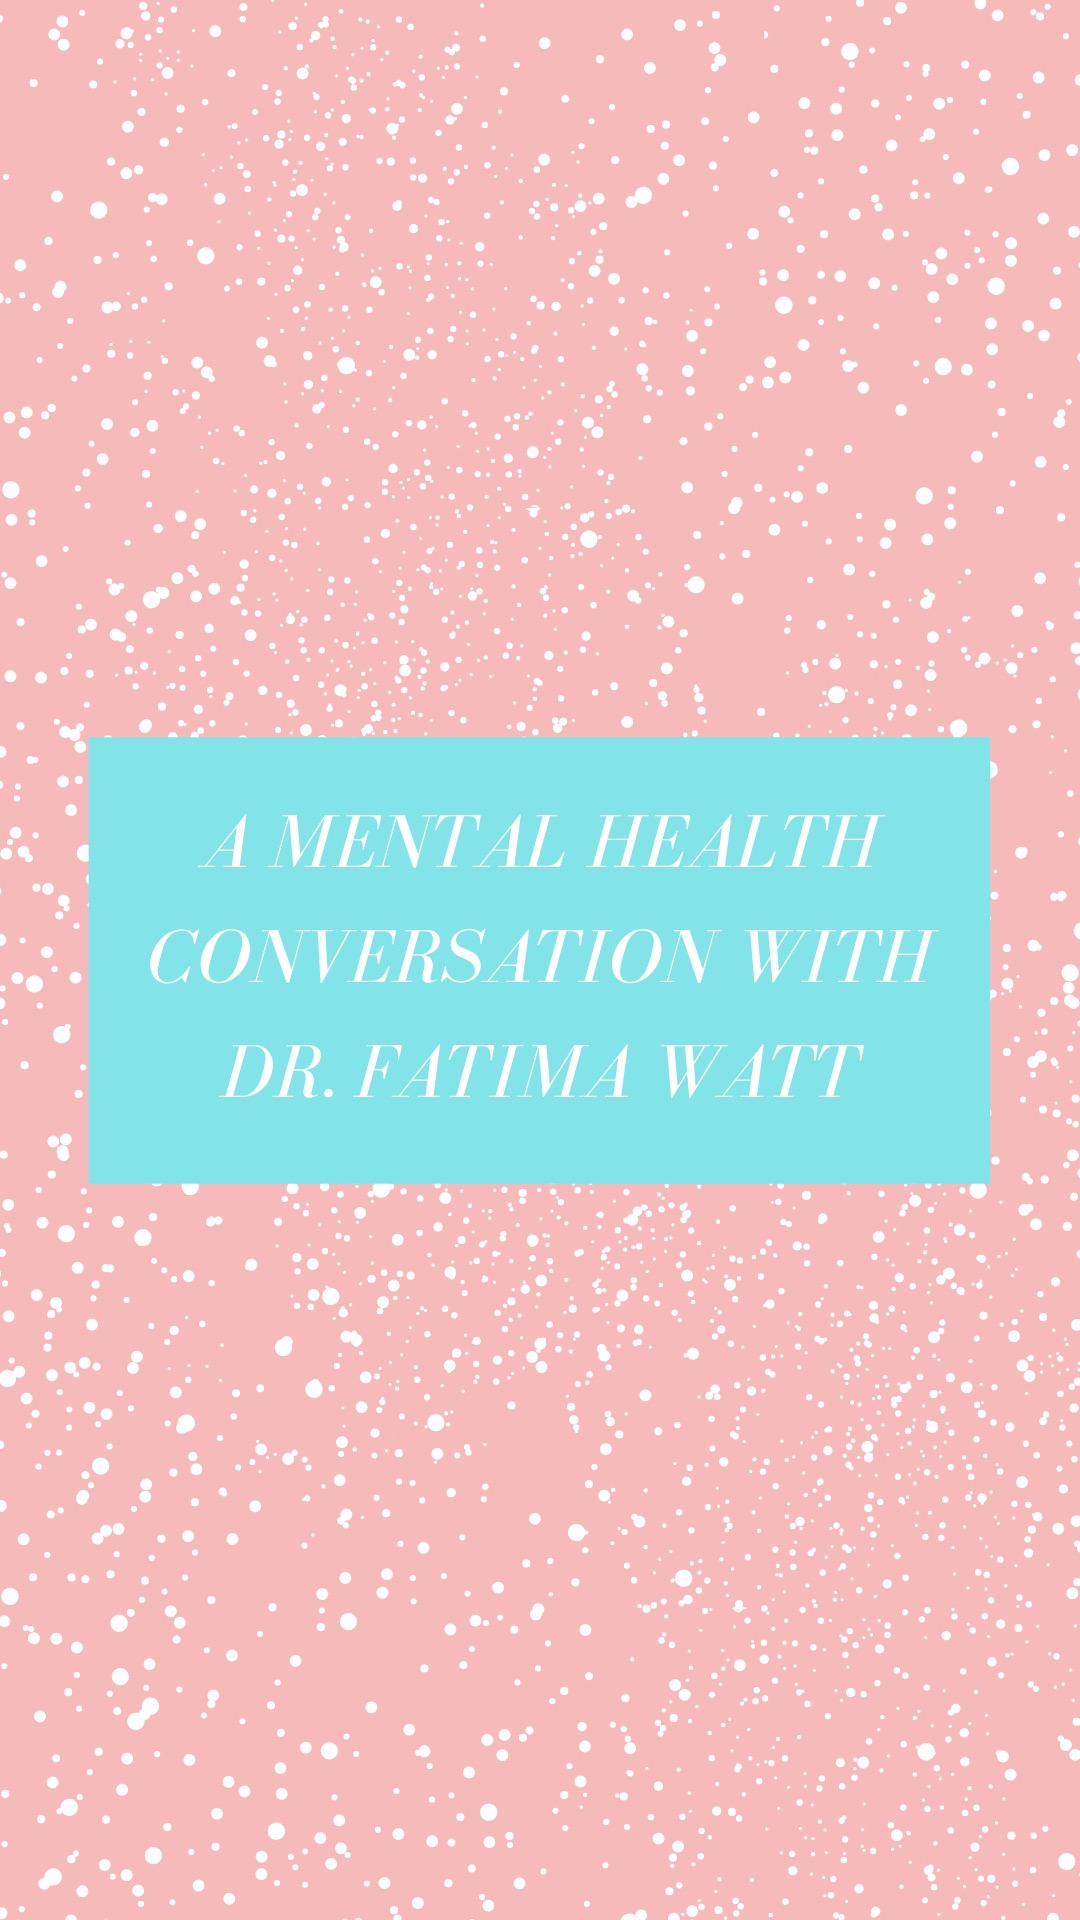 A Mental Health Conversation With Dr. Fatima Watt